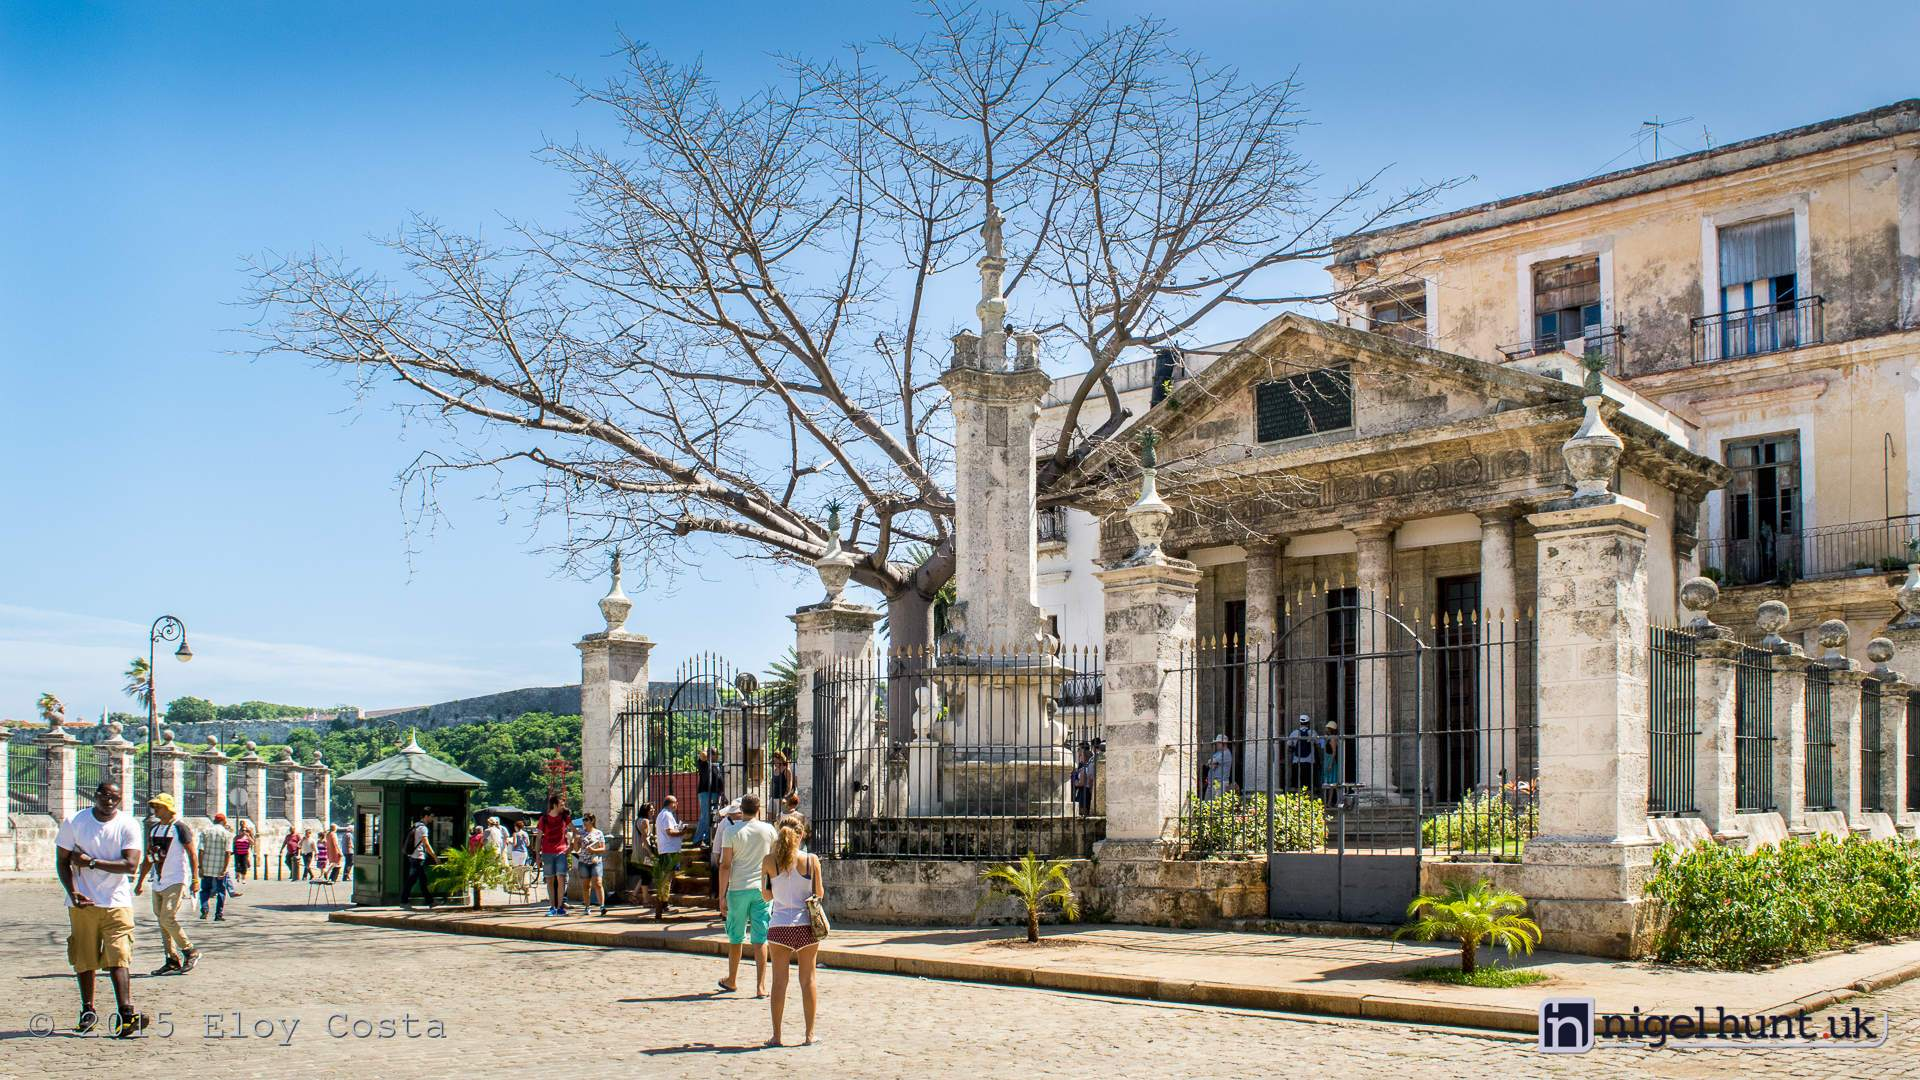 Small Greco-Roman temple -El Templete- at Old Havana